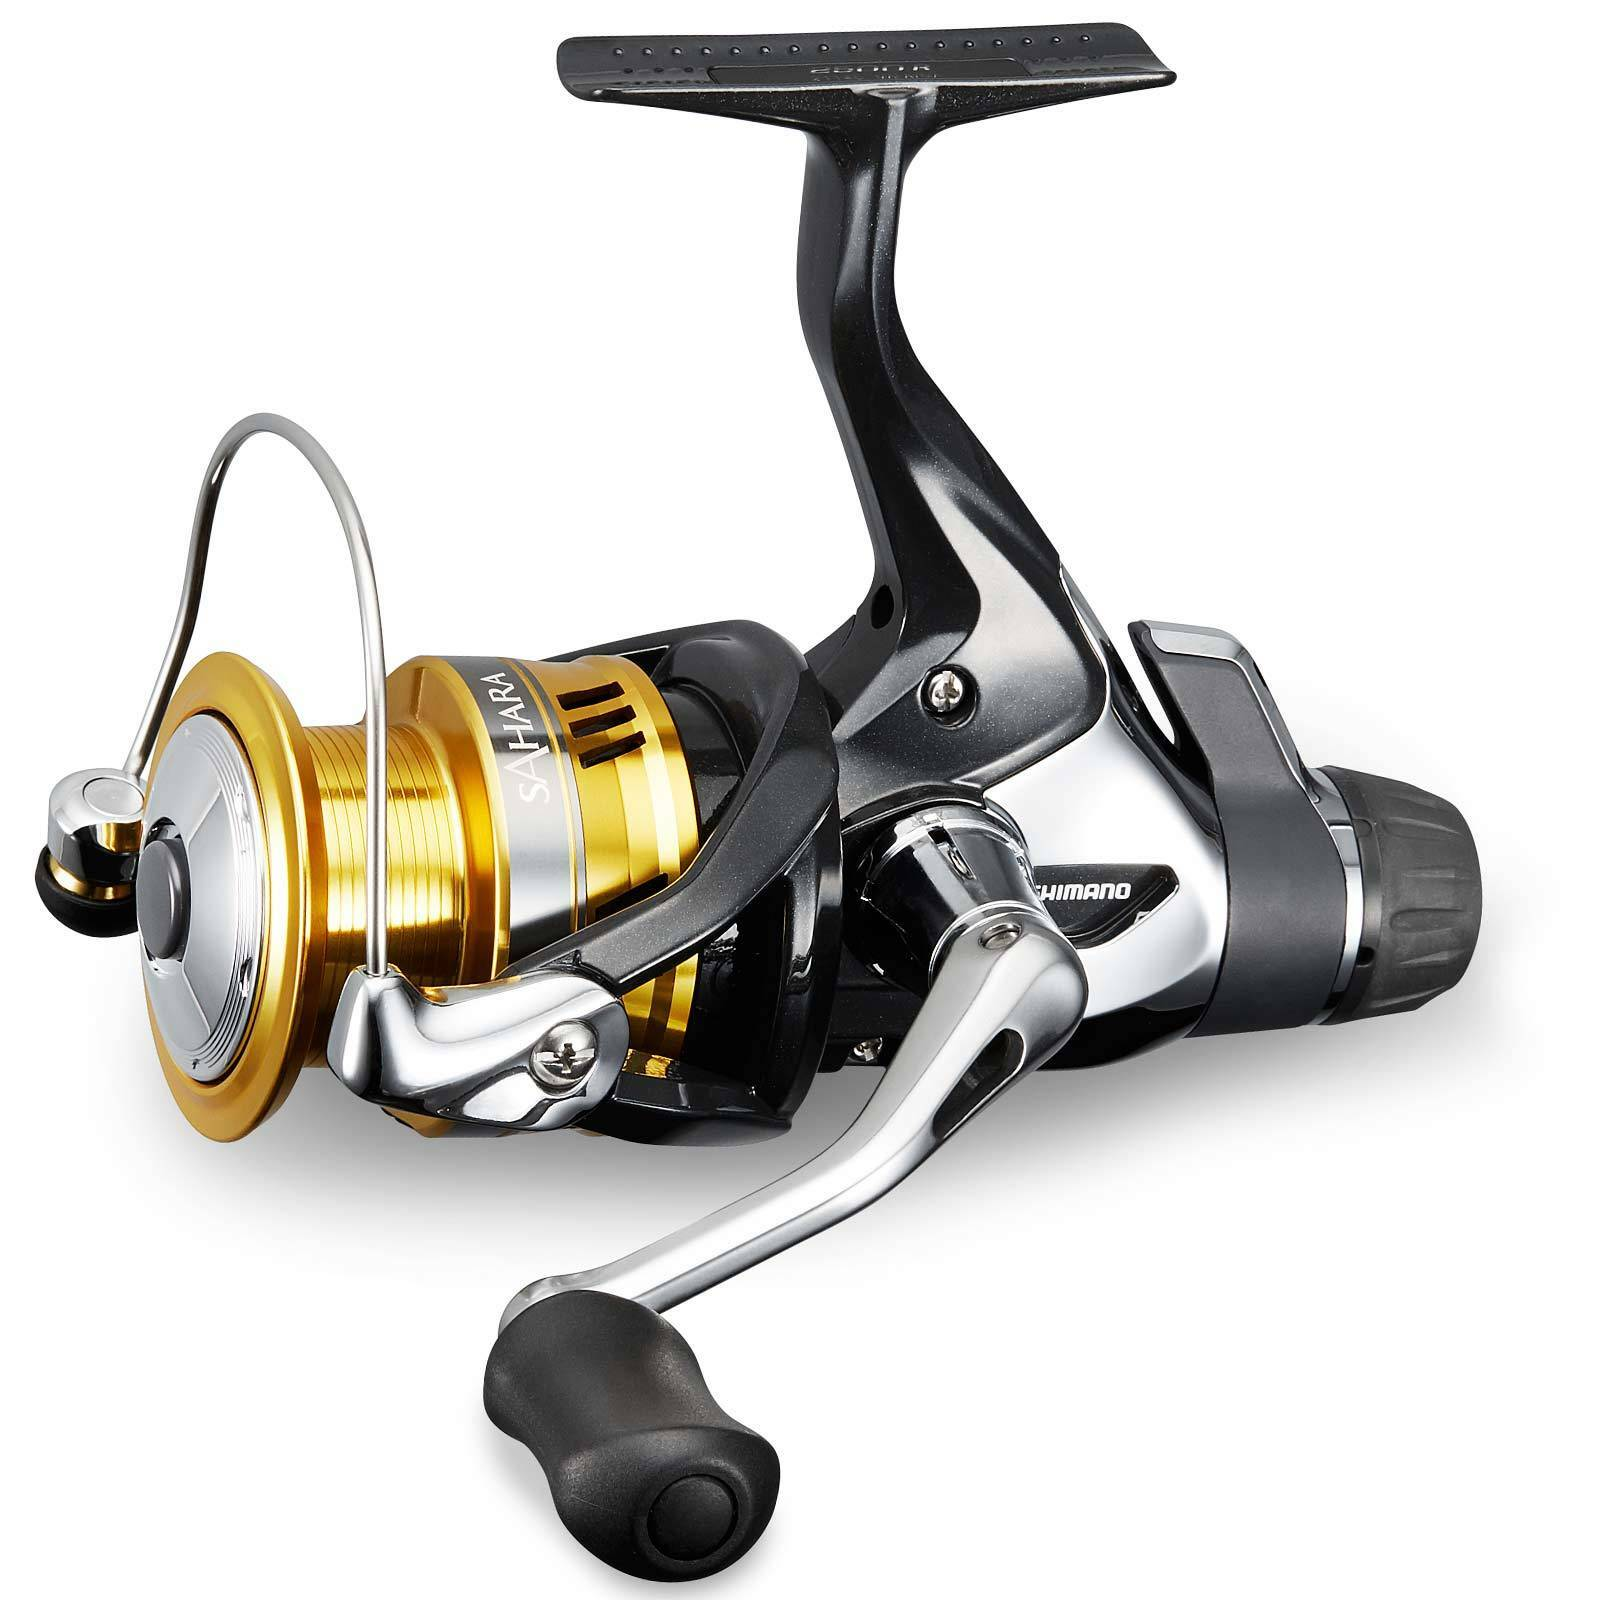 Shimano Angelrolle Kampfbremsrolle Spinnrolle Sahara Drag Fightin' Drag Sahara 3000S RD d97472